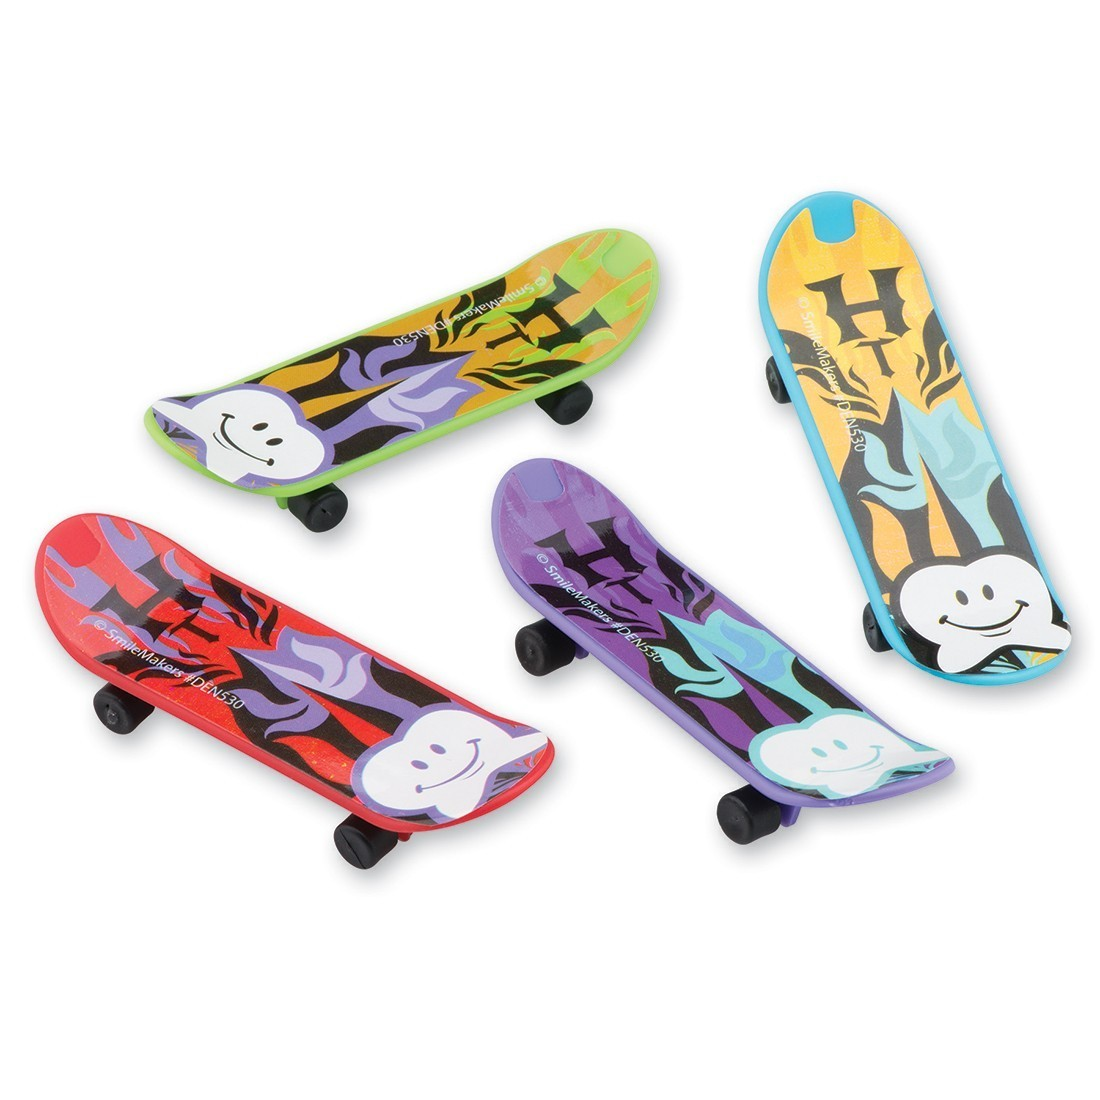 Happy Tooth Skateboards [image]